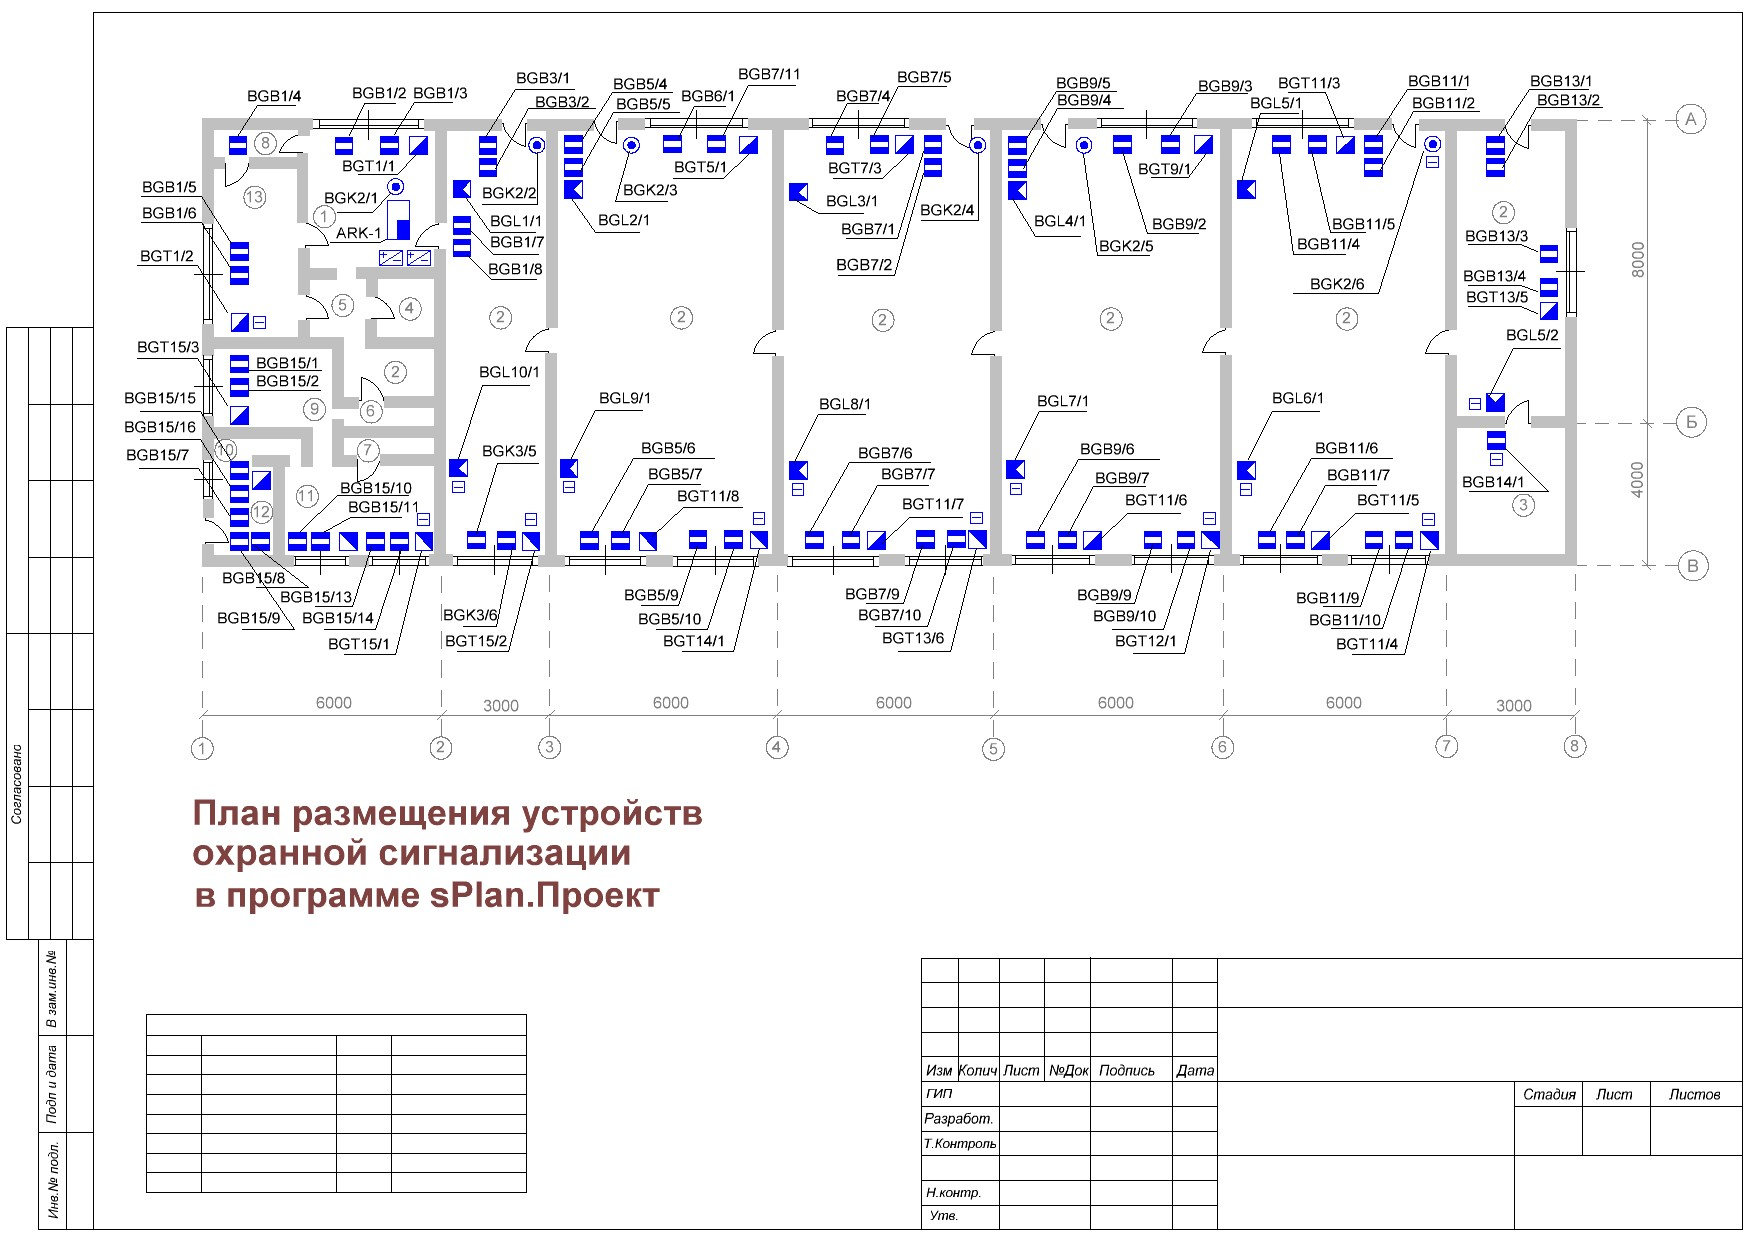 Program to create plans and projects sPlan.Проект